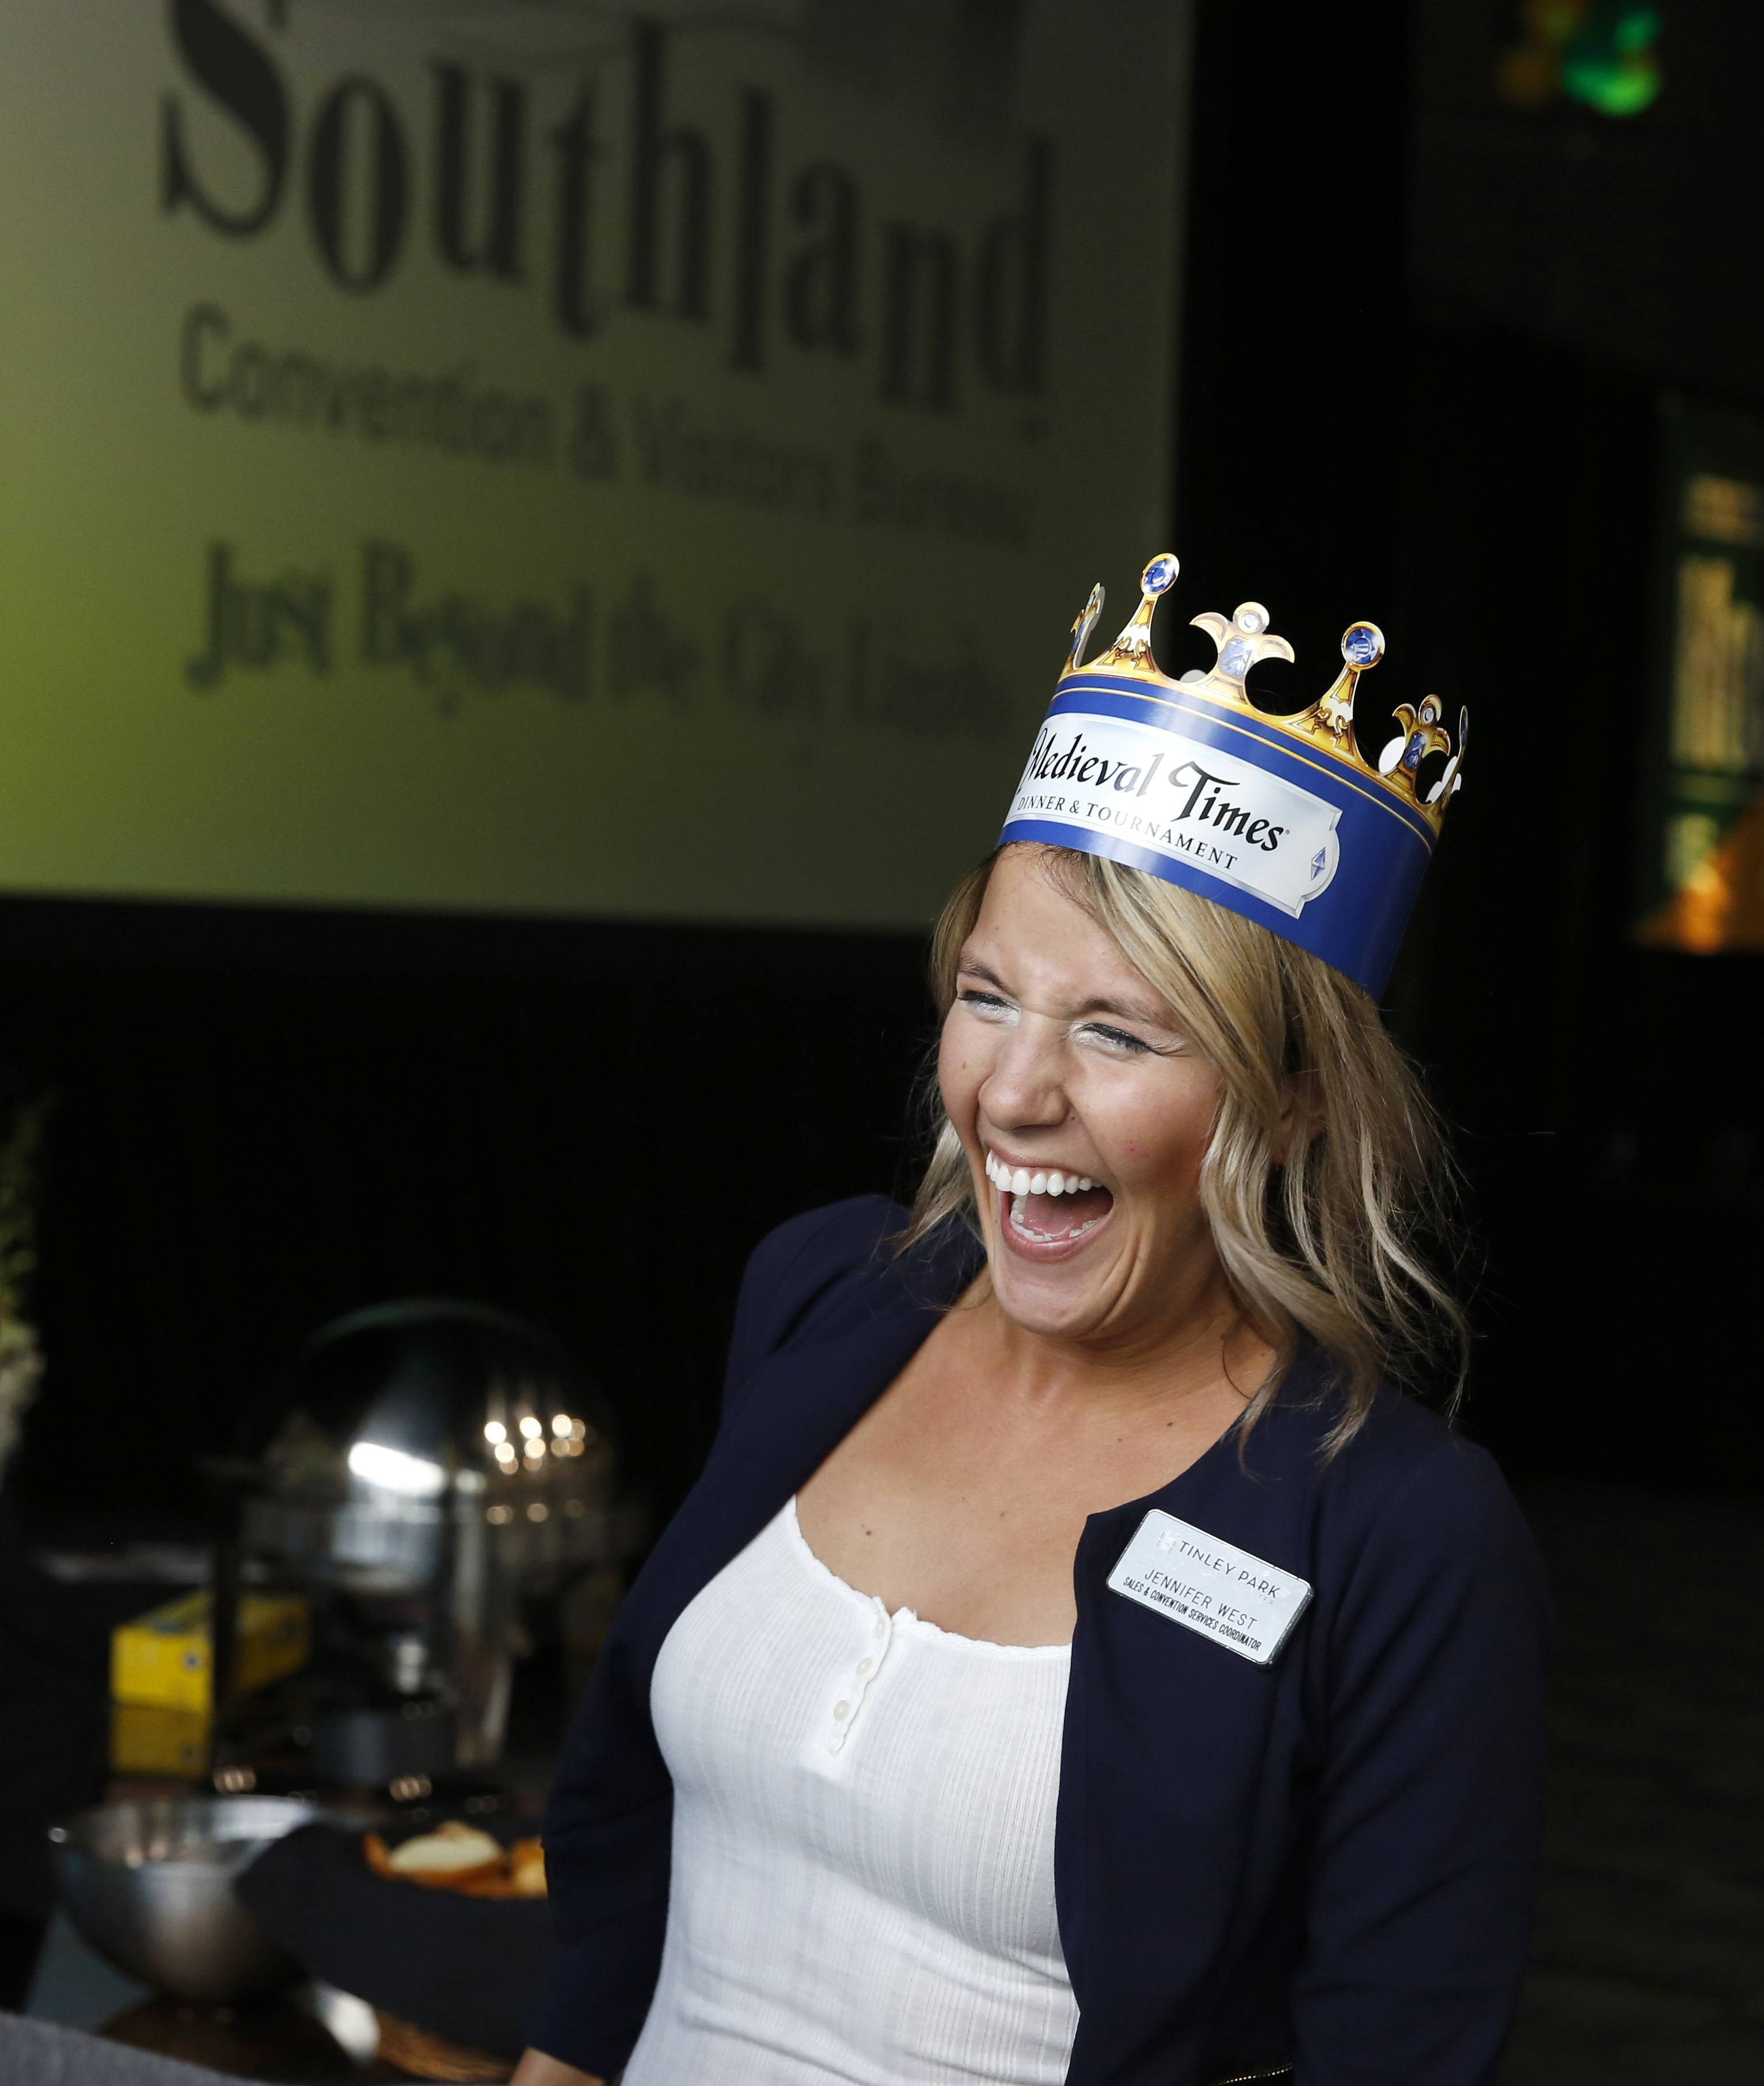 DanielWhite/dwhite@dailyherald.comJennifer West of the Tinley Park Convention Center models a Medieval Times crown during the BizLedger Hospitality Expo.